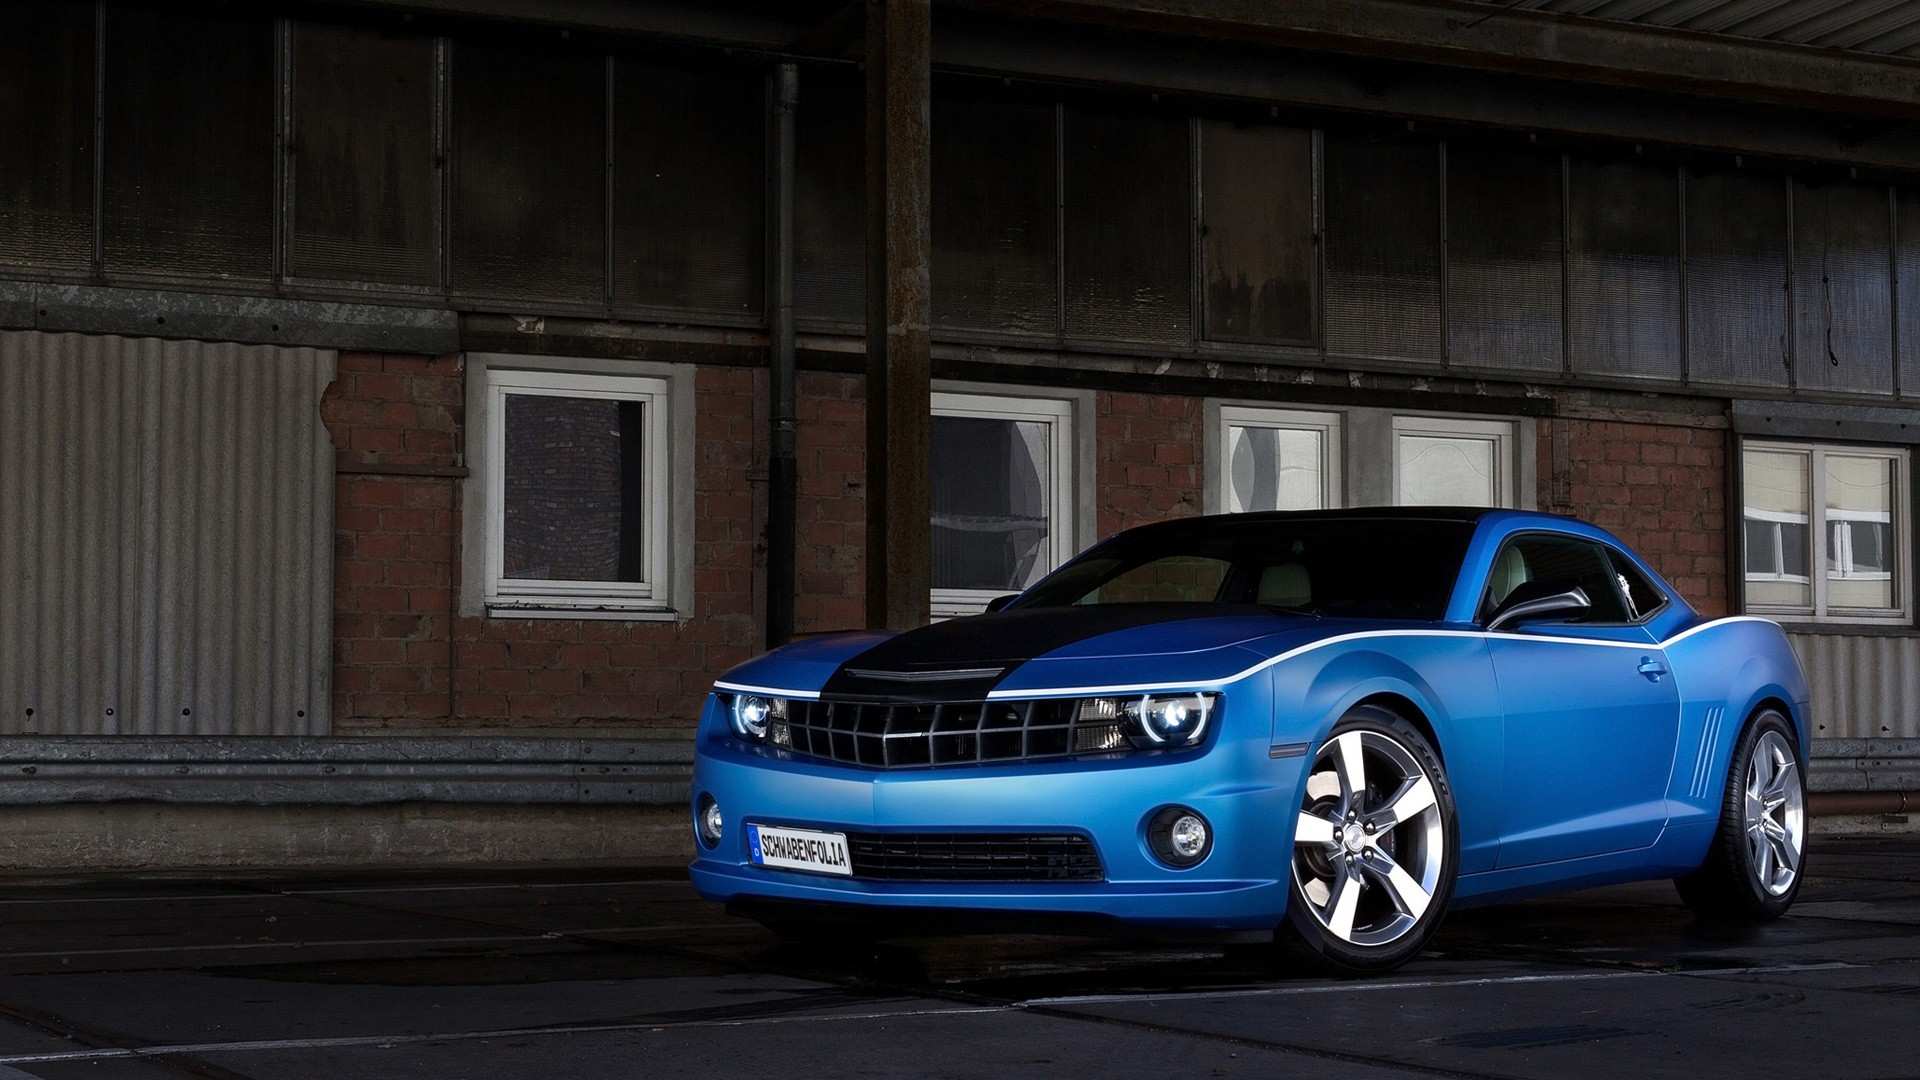 Schwabenfolia Chevrolet Camaro Ss 2013 Wallpaper Hd Car